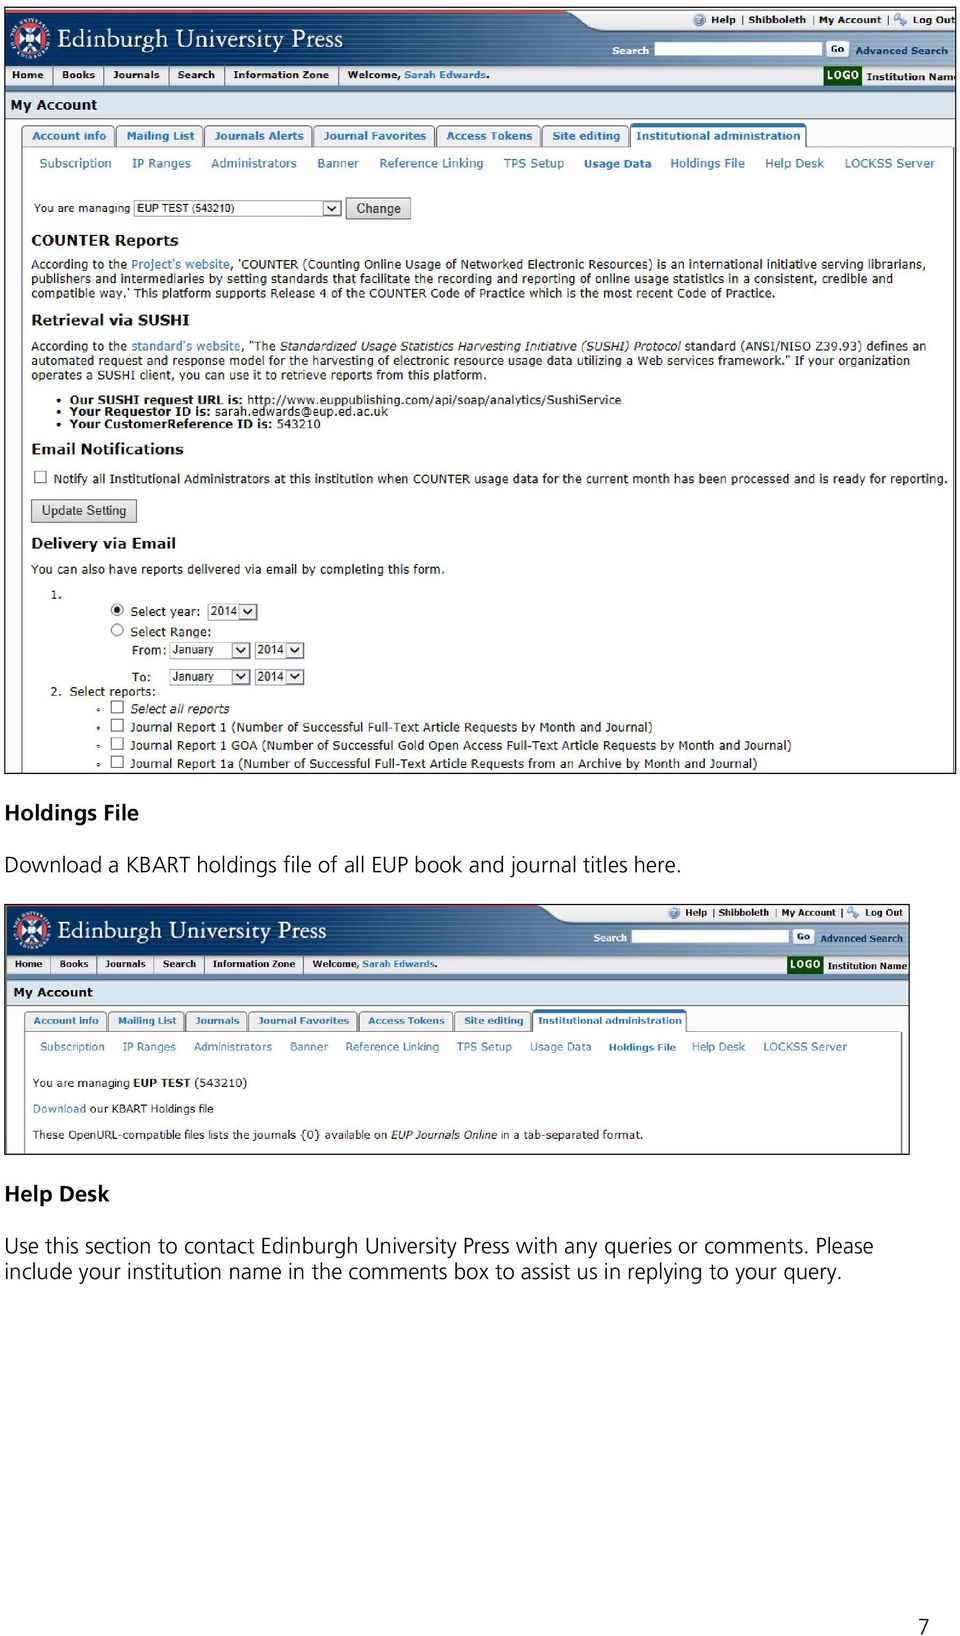 Help Desk Use this section to contact Edinburgh University Press with